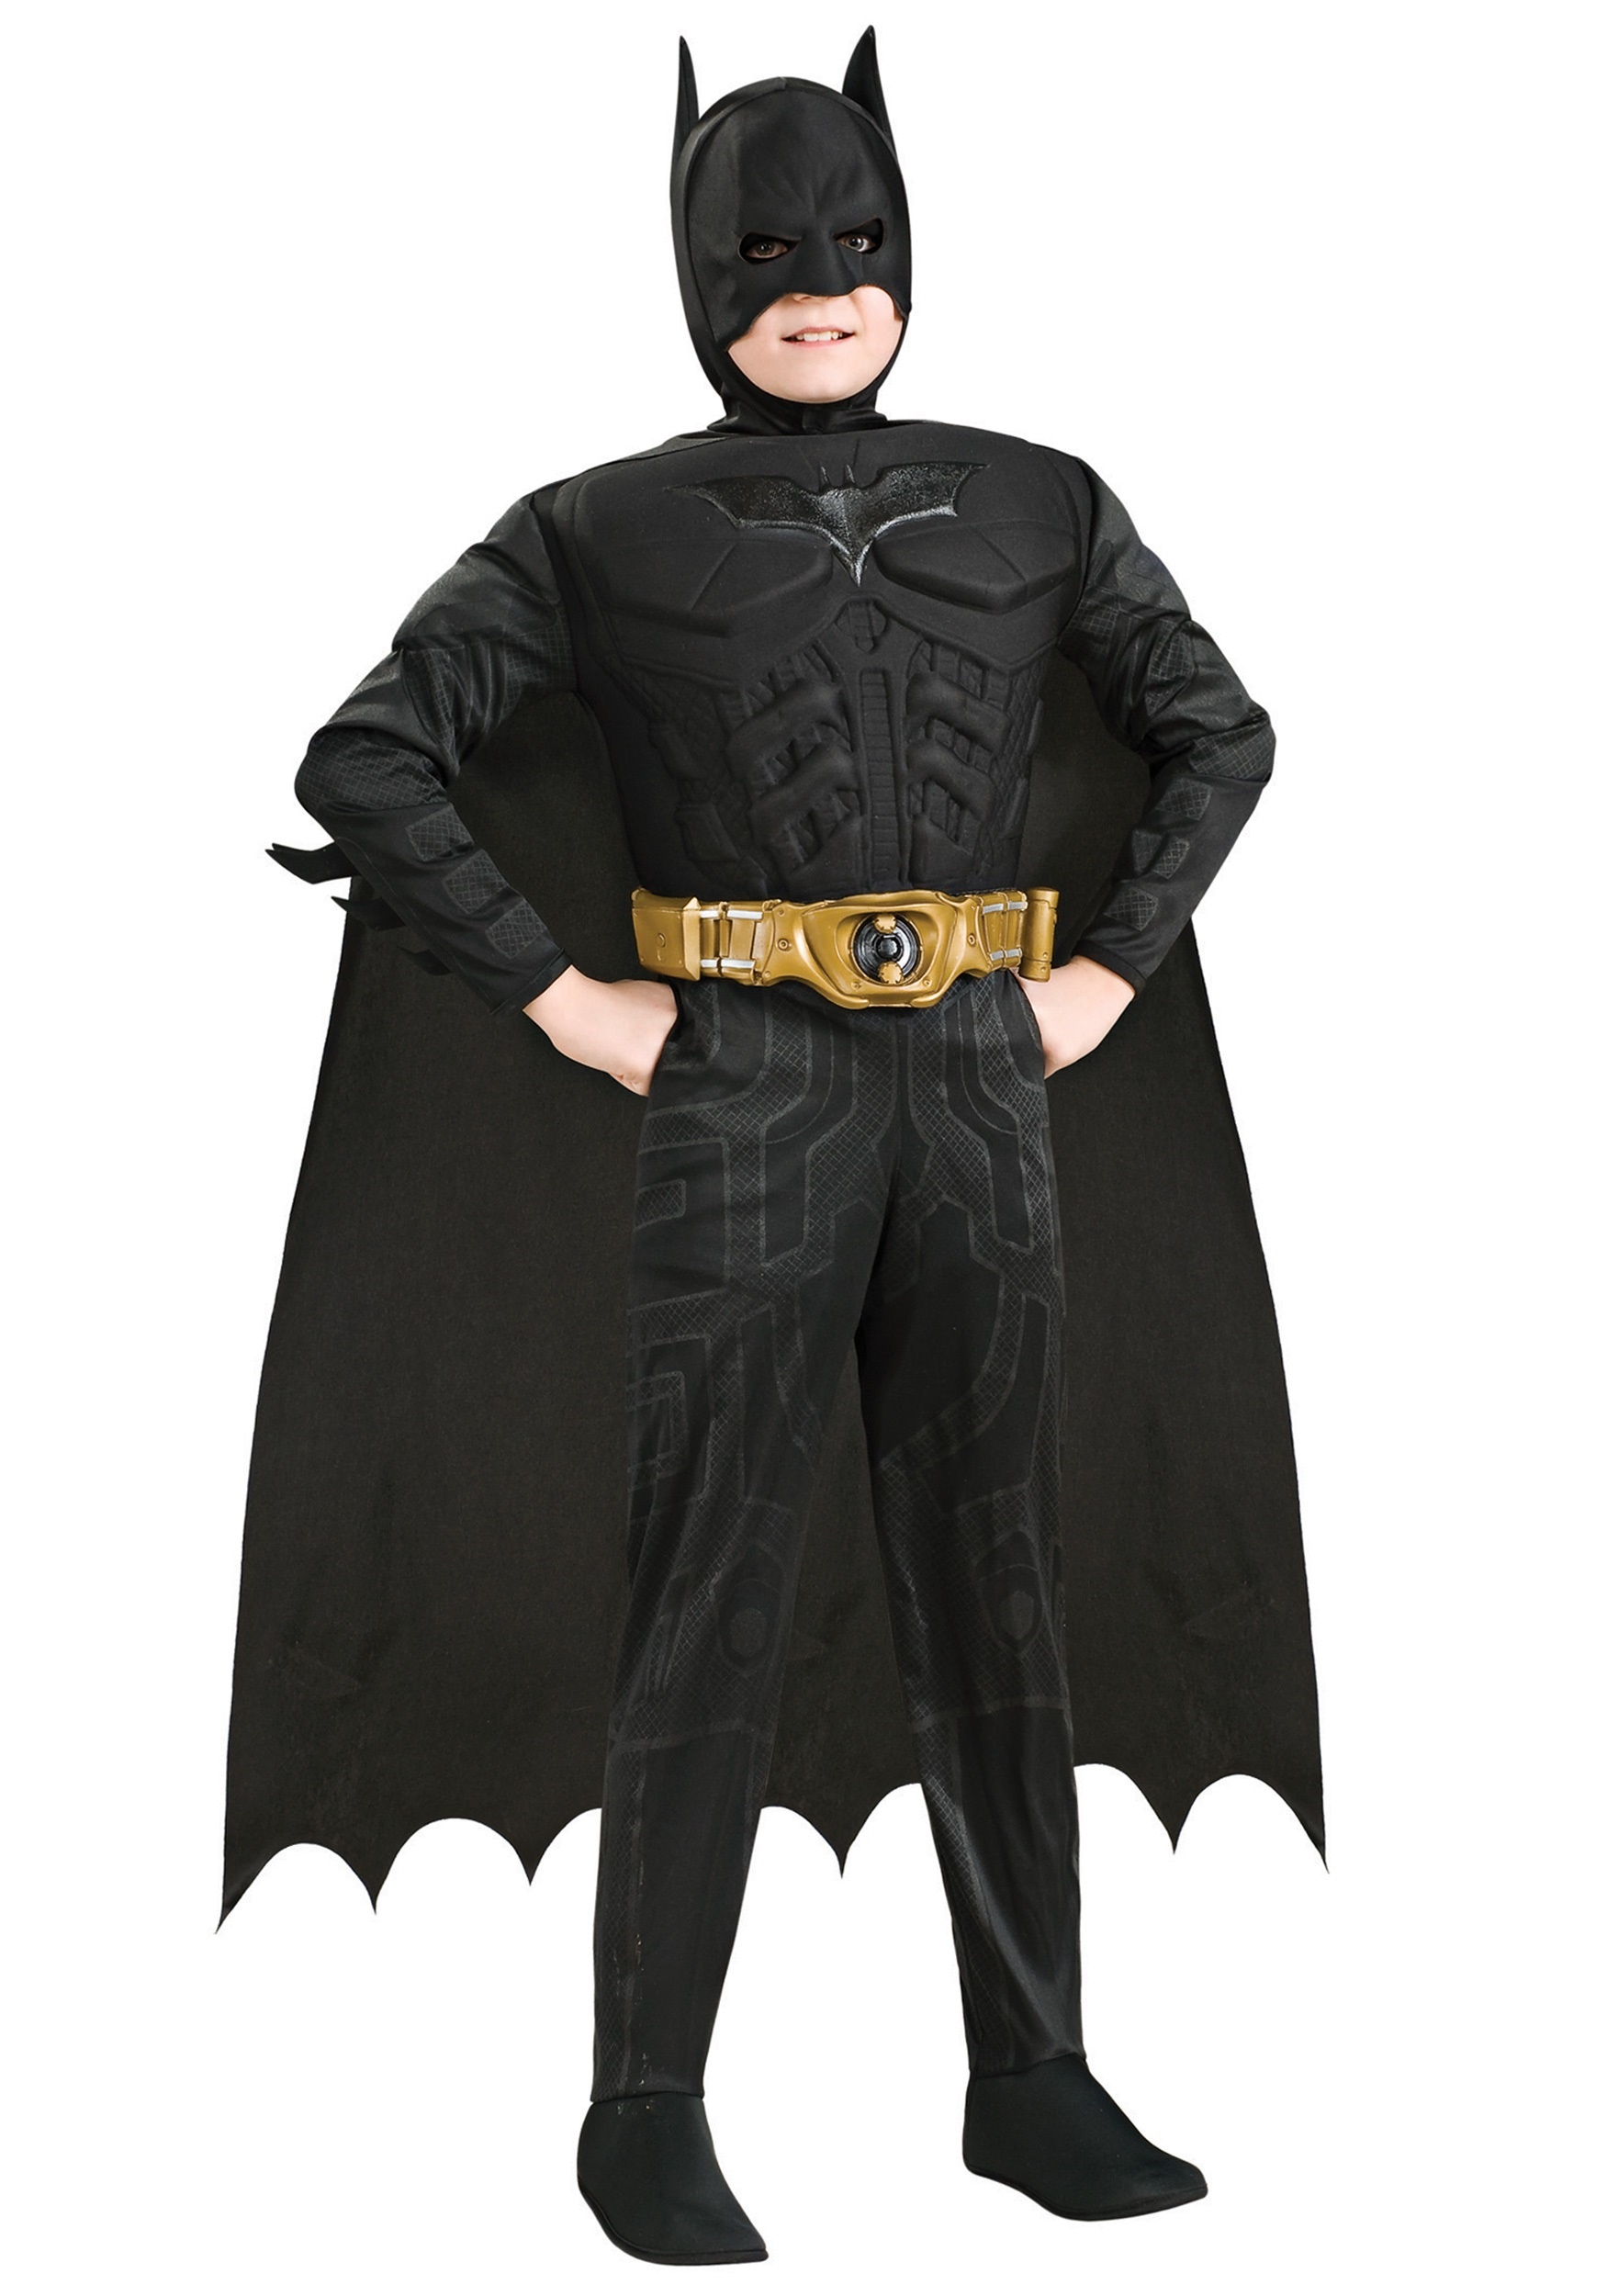 Robin Halloween Costume, Batman Costume For Boys, Batman And Robin Costumes, Superhero Costumes Kids, Spider Costume, Family Halloween Costumes, Halloween Kids, Kid Costumes, Halloween Find this Pin and more on Halloween Fun by Angela Williams.